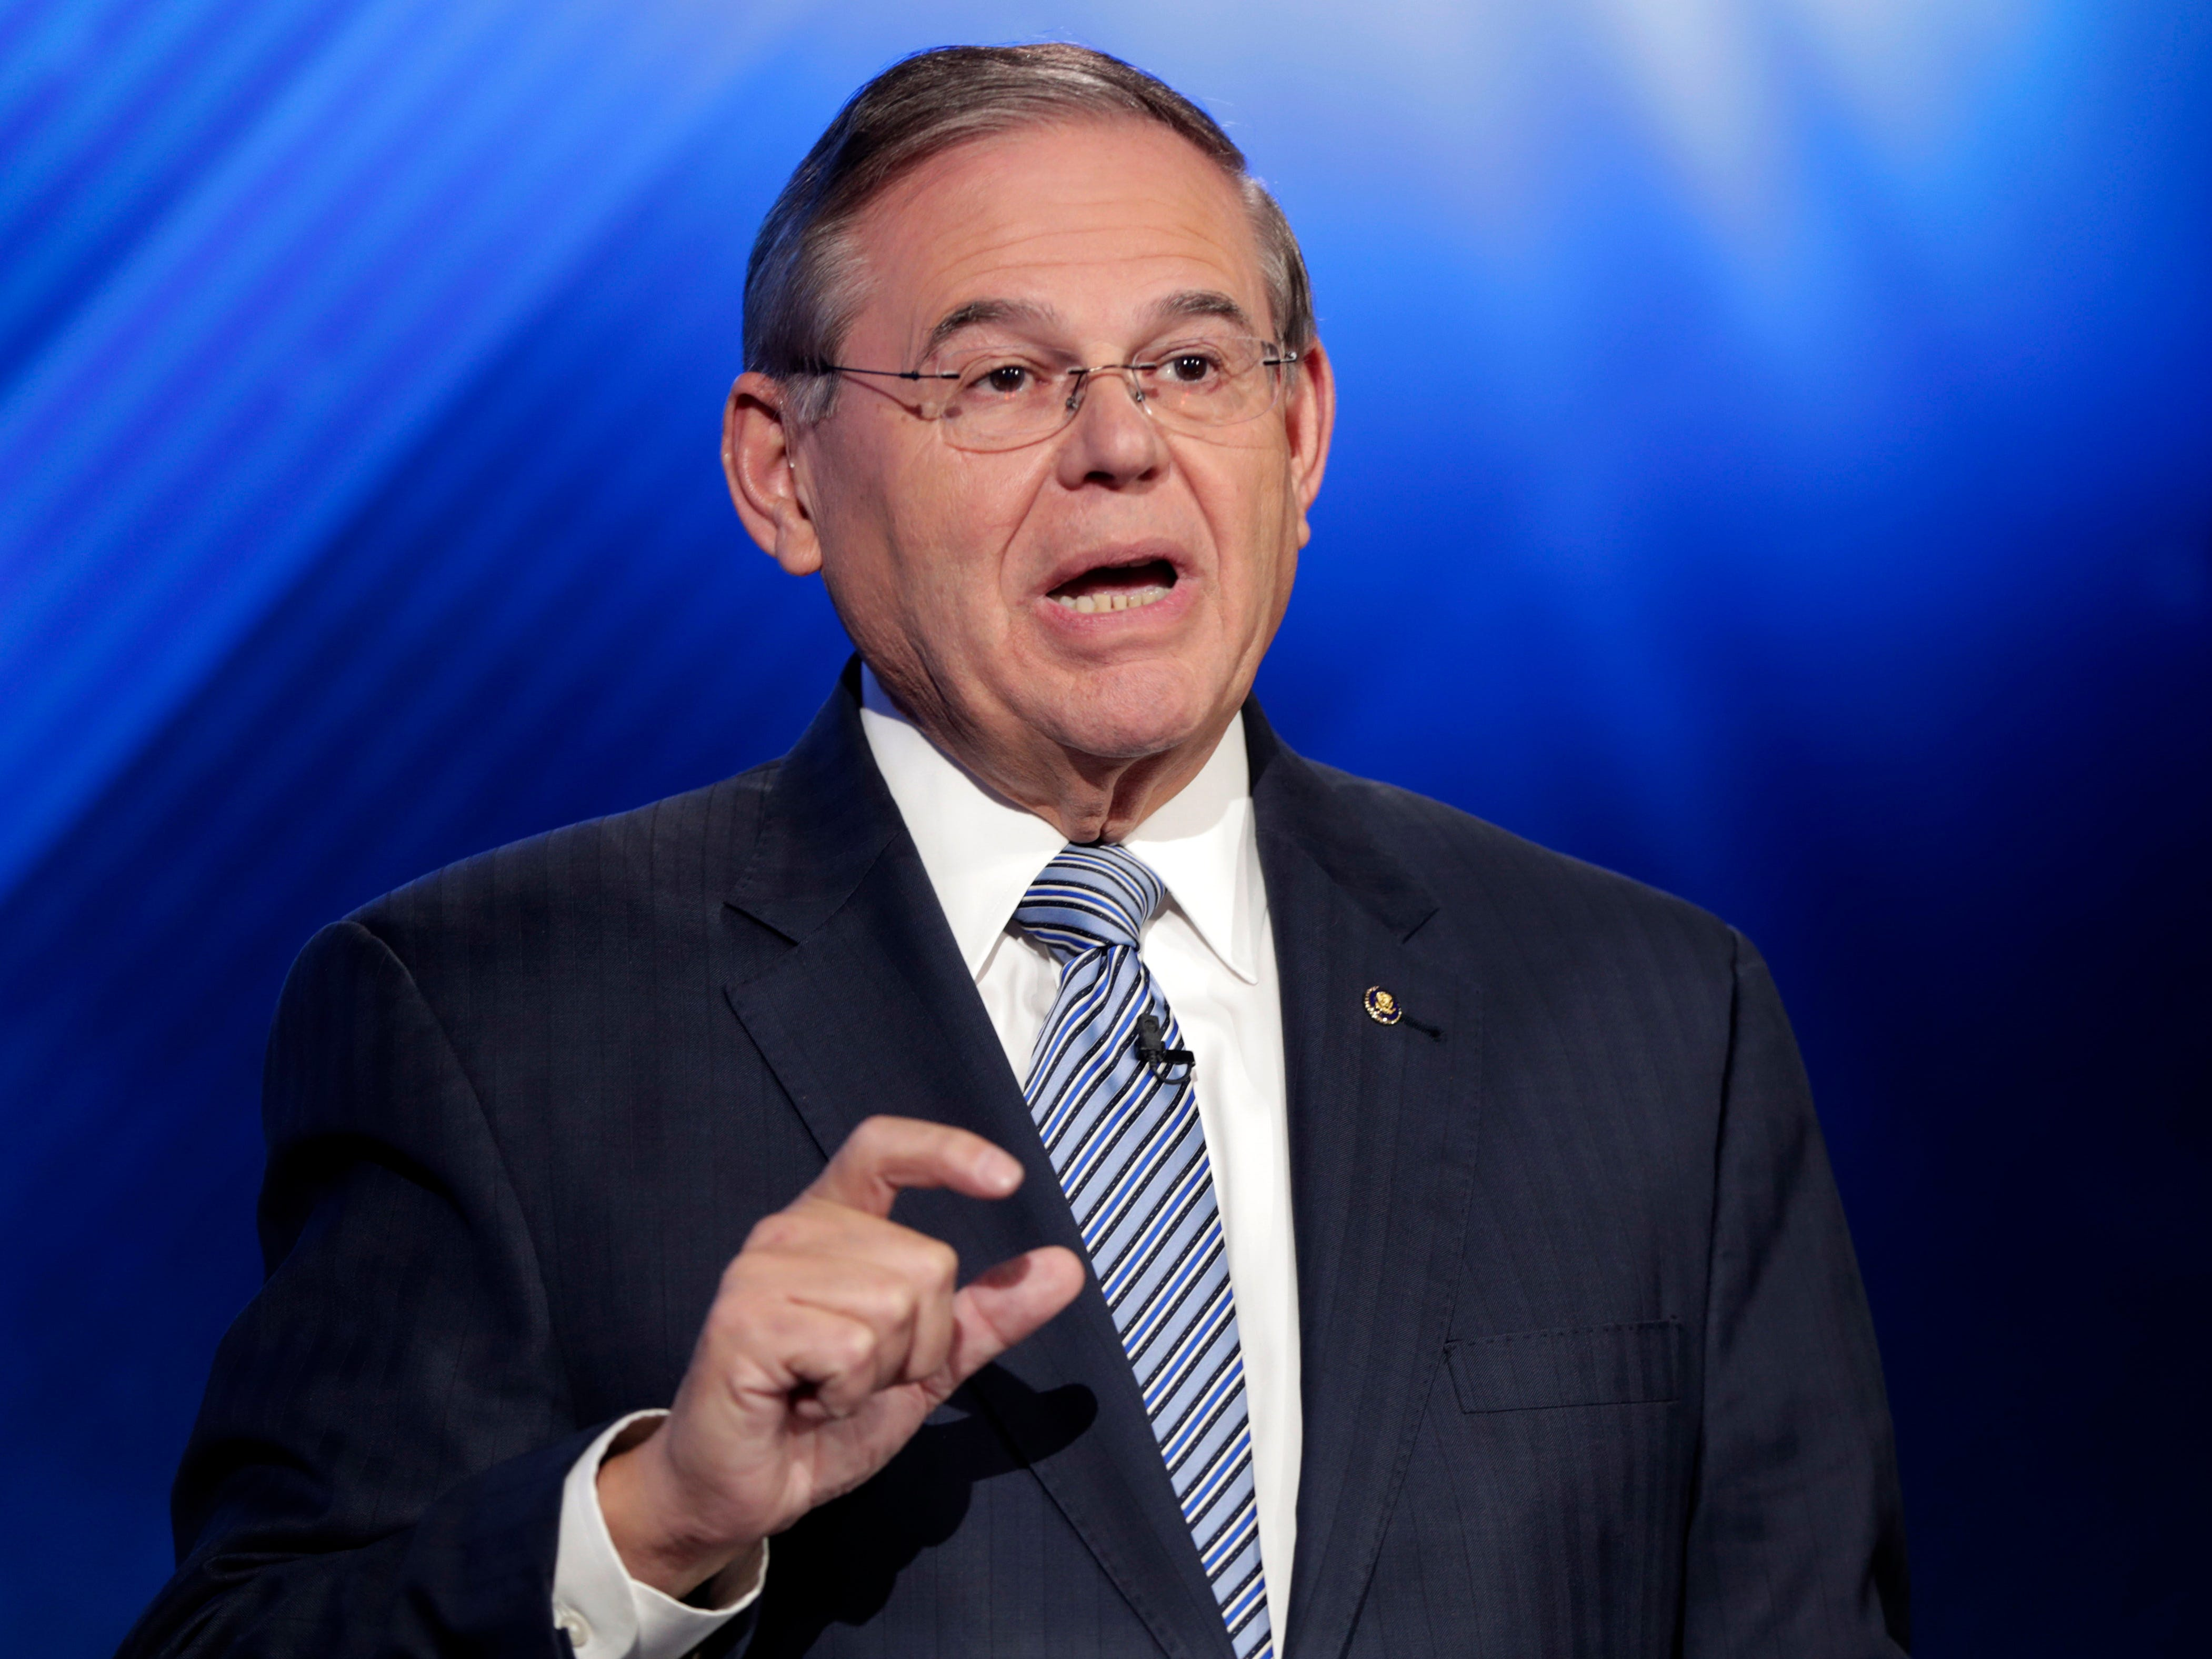 New Jersey Sen. Bob Menendez, the Democrat candidate for the U.S. Senate race in New Jersey, speaks during a debate with Republican candidate Bob Hugin, Wednesday, Oct. 24, 2018, in Newark, N.J.